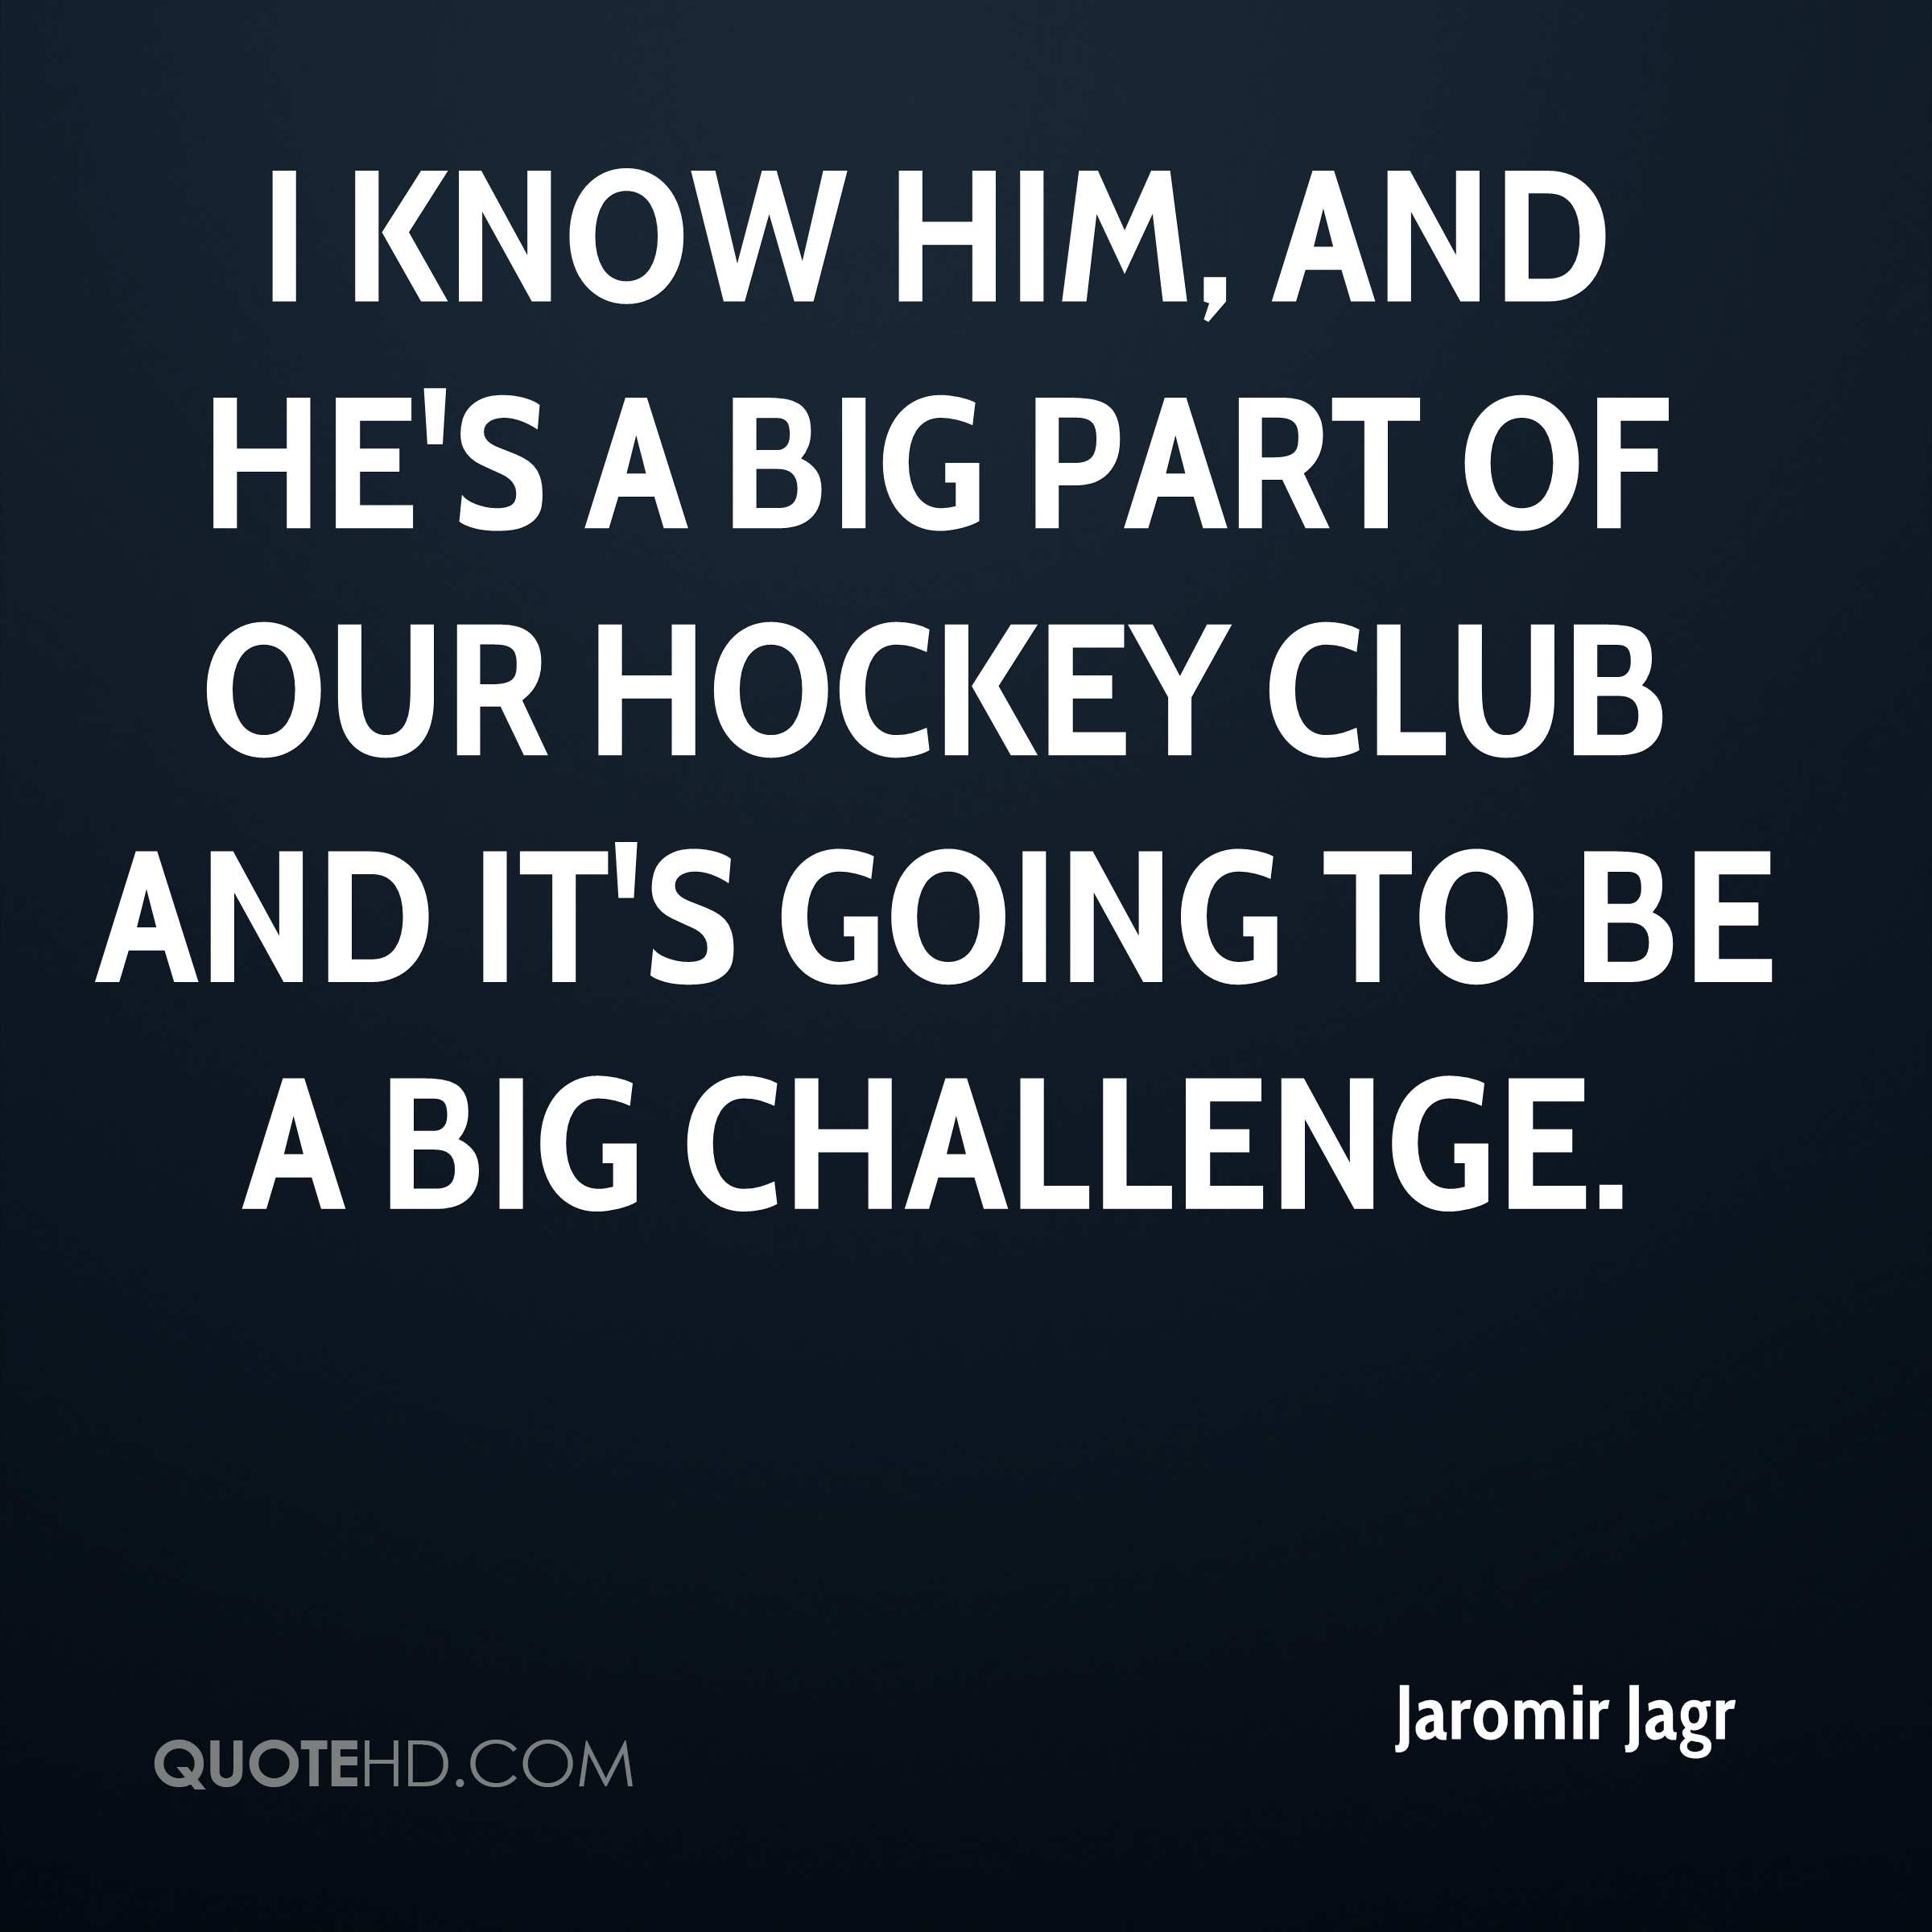 I know him, and he's a big part of our hockey club and it's going to be a big challenge.